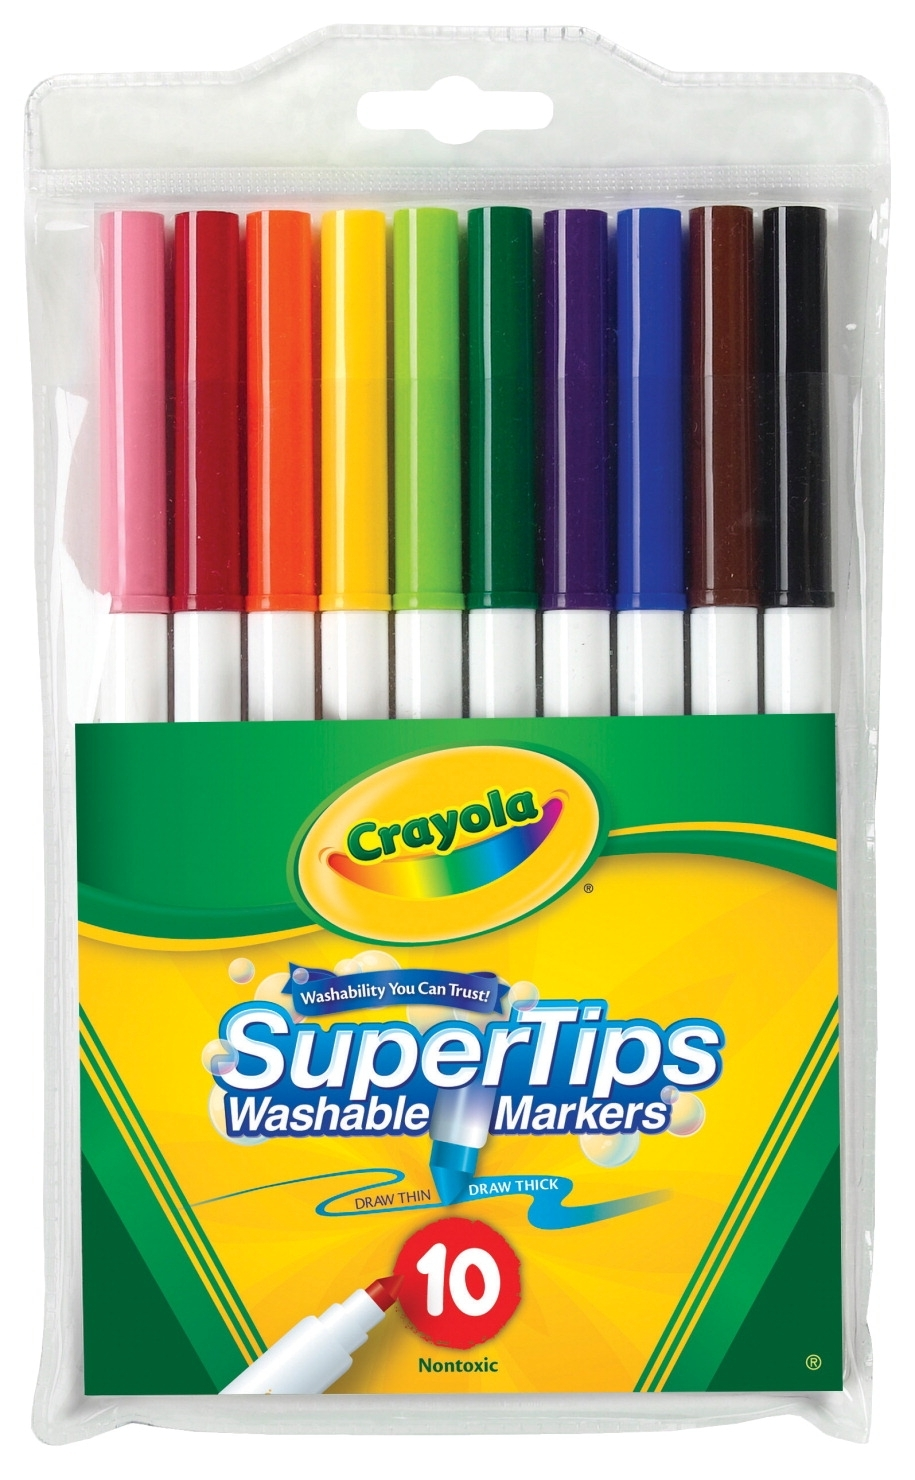 Learning: Supplies Drawing Markers Washable Markers - 1371175 - Crayola Non-toxic Washable Marker Set; Super Tip; Assorted Colors; Set Of 10 1371175